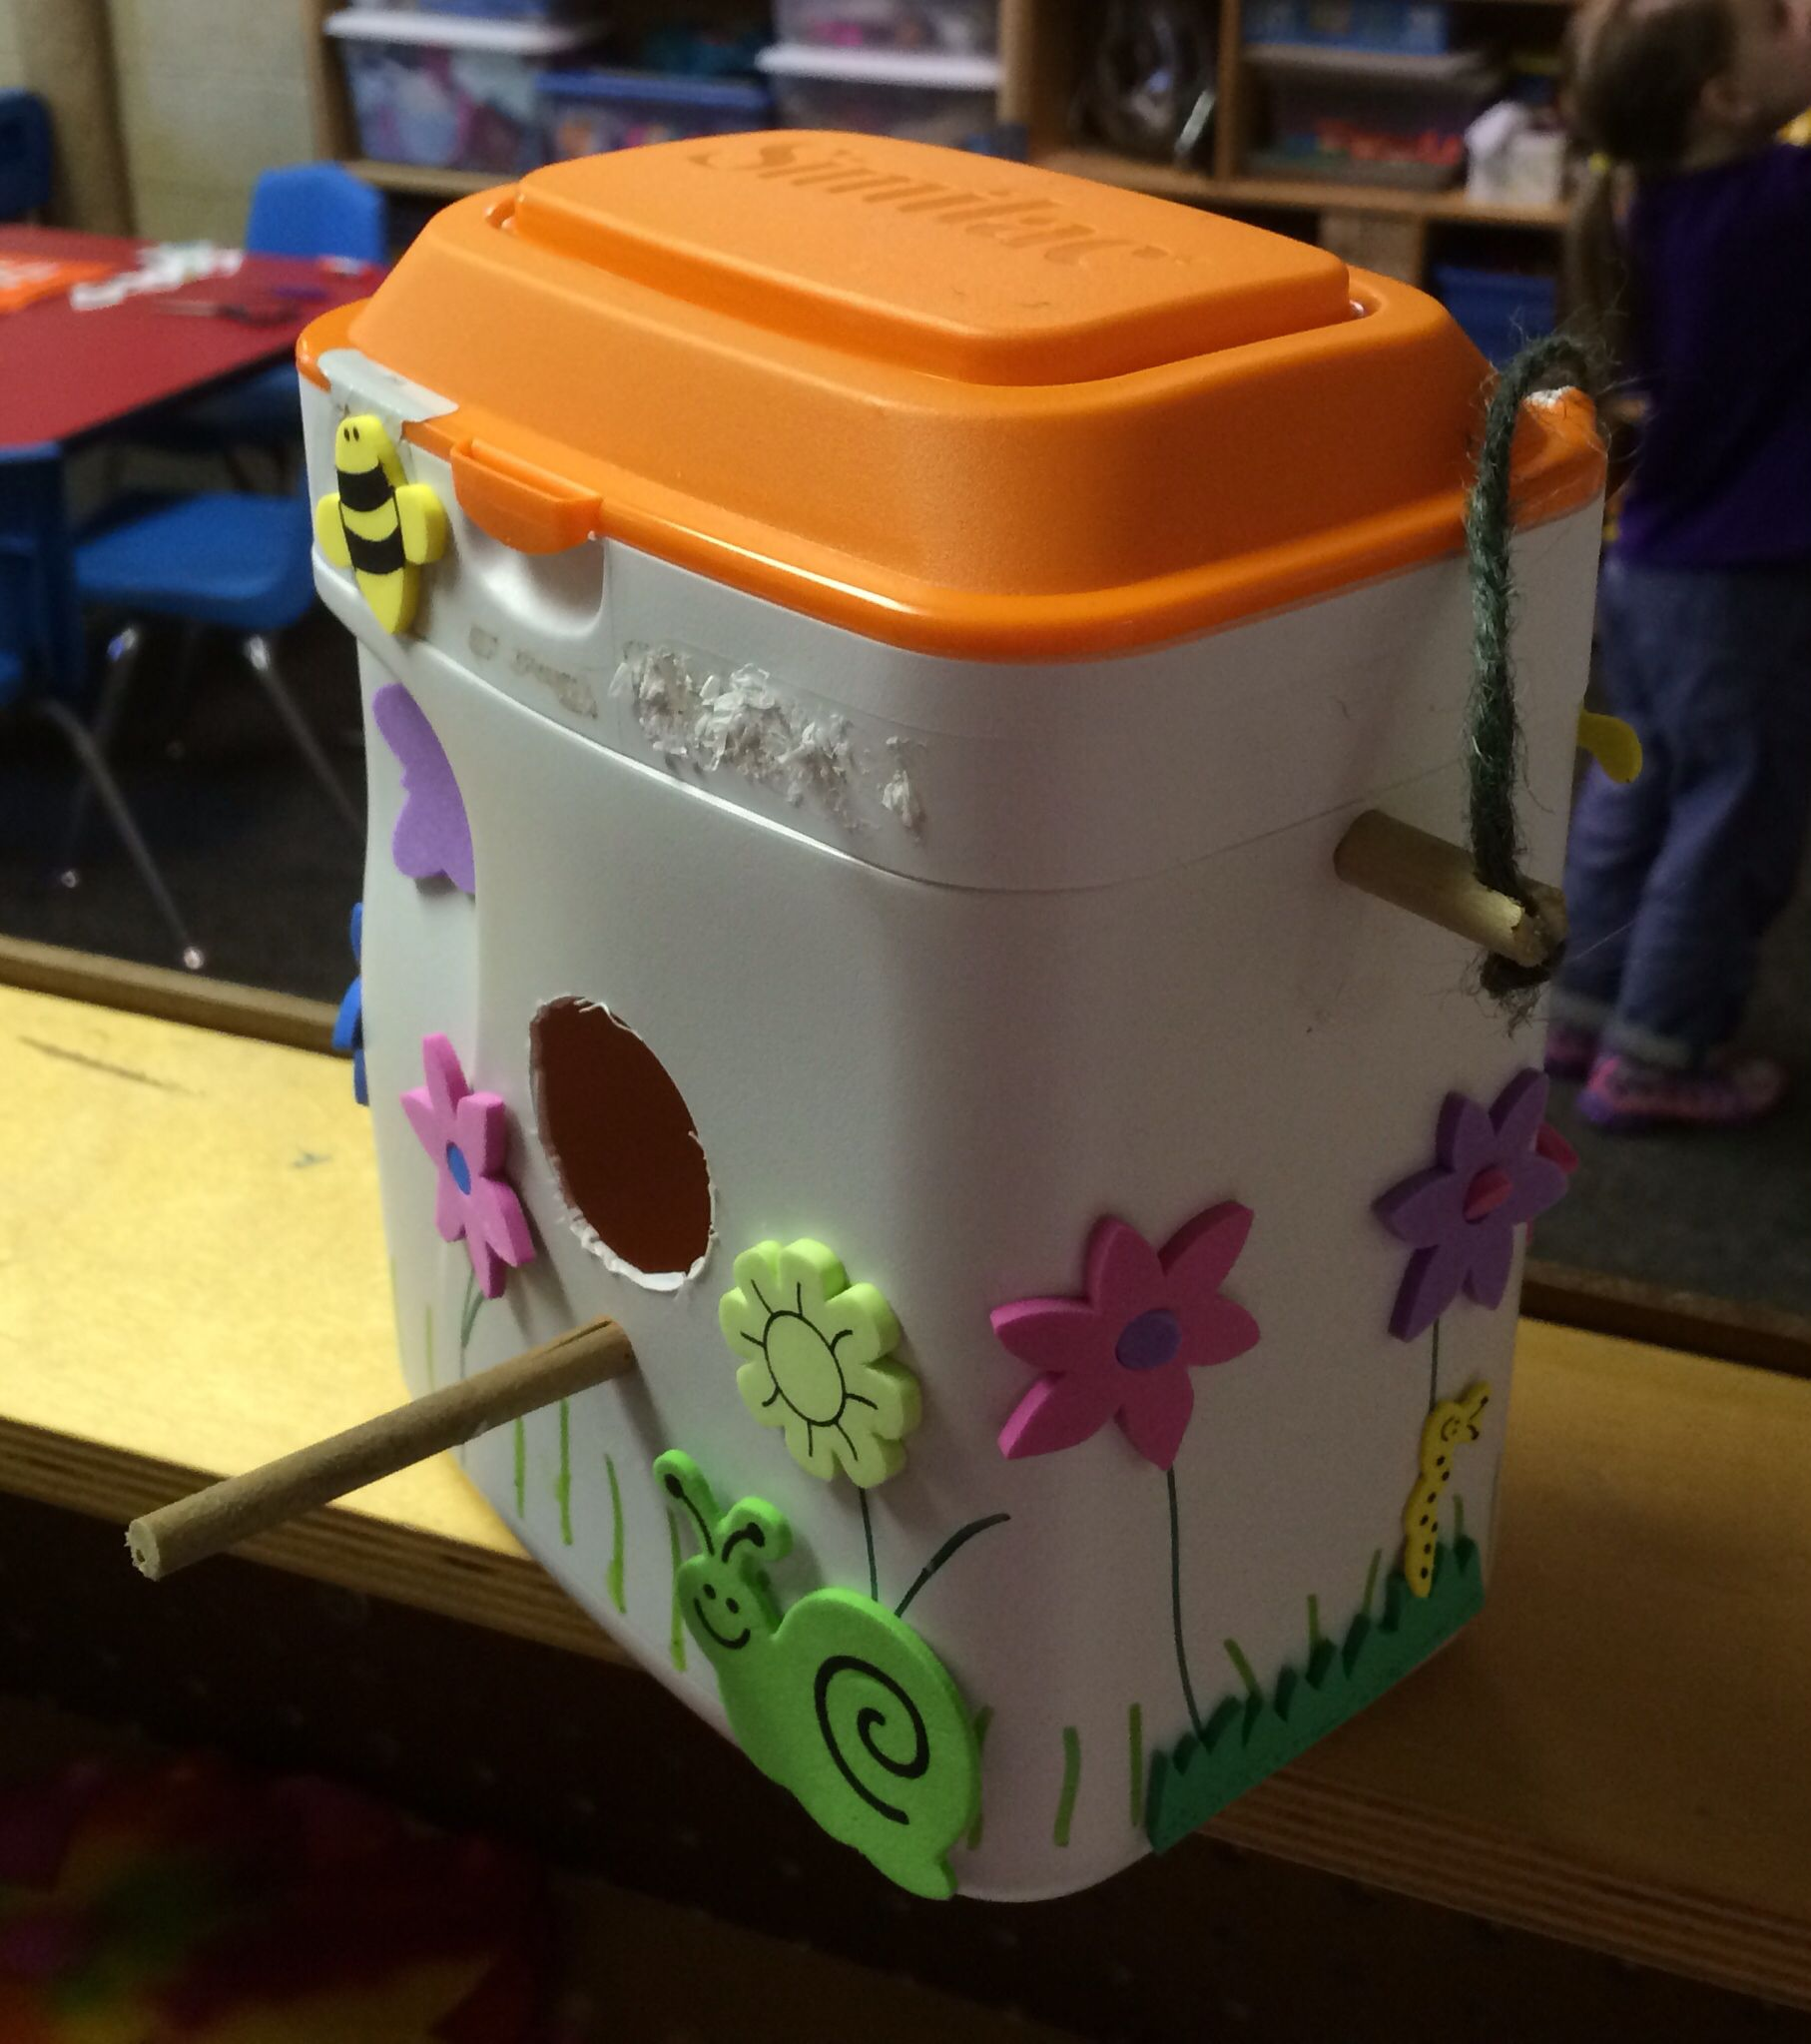 Great earth day project birdhouse made by recycling an